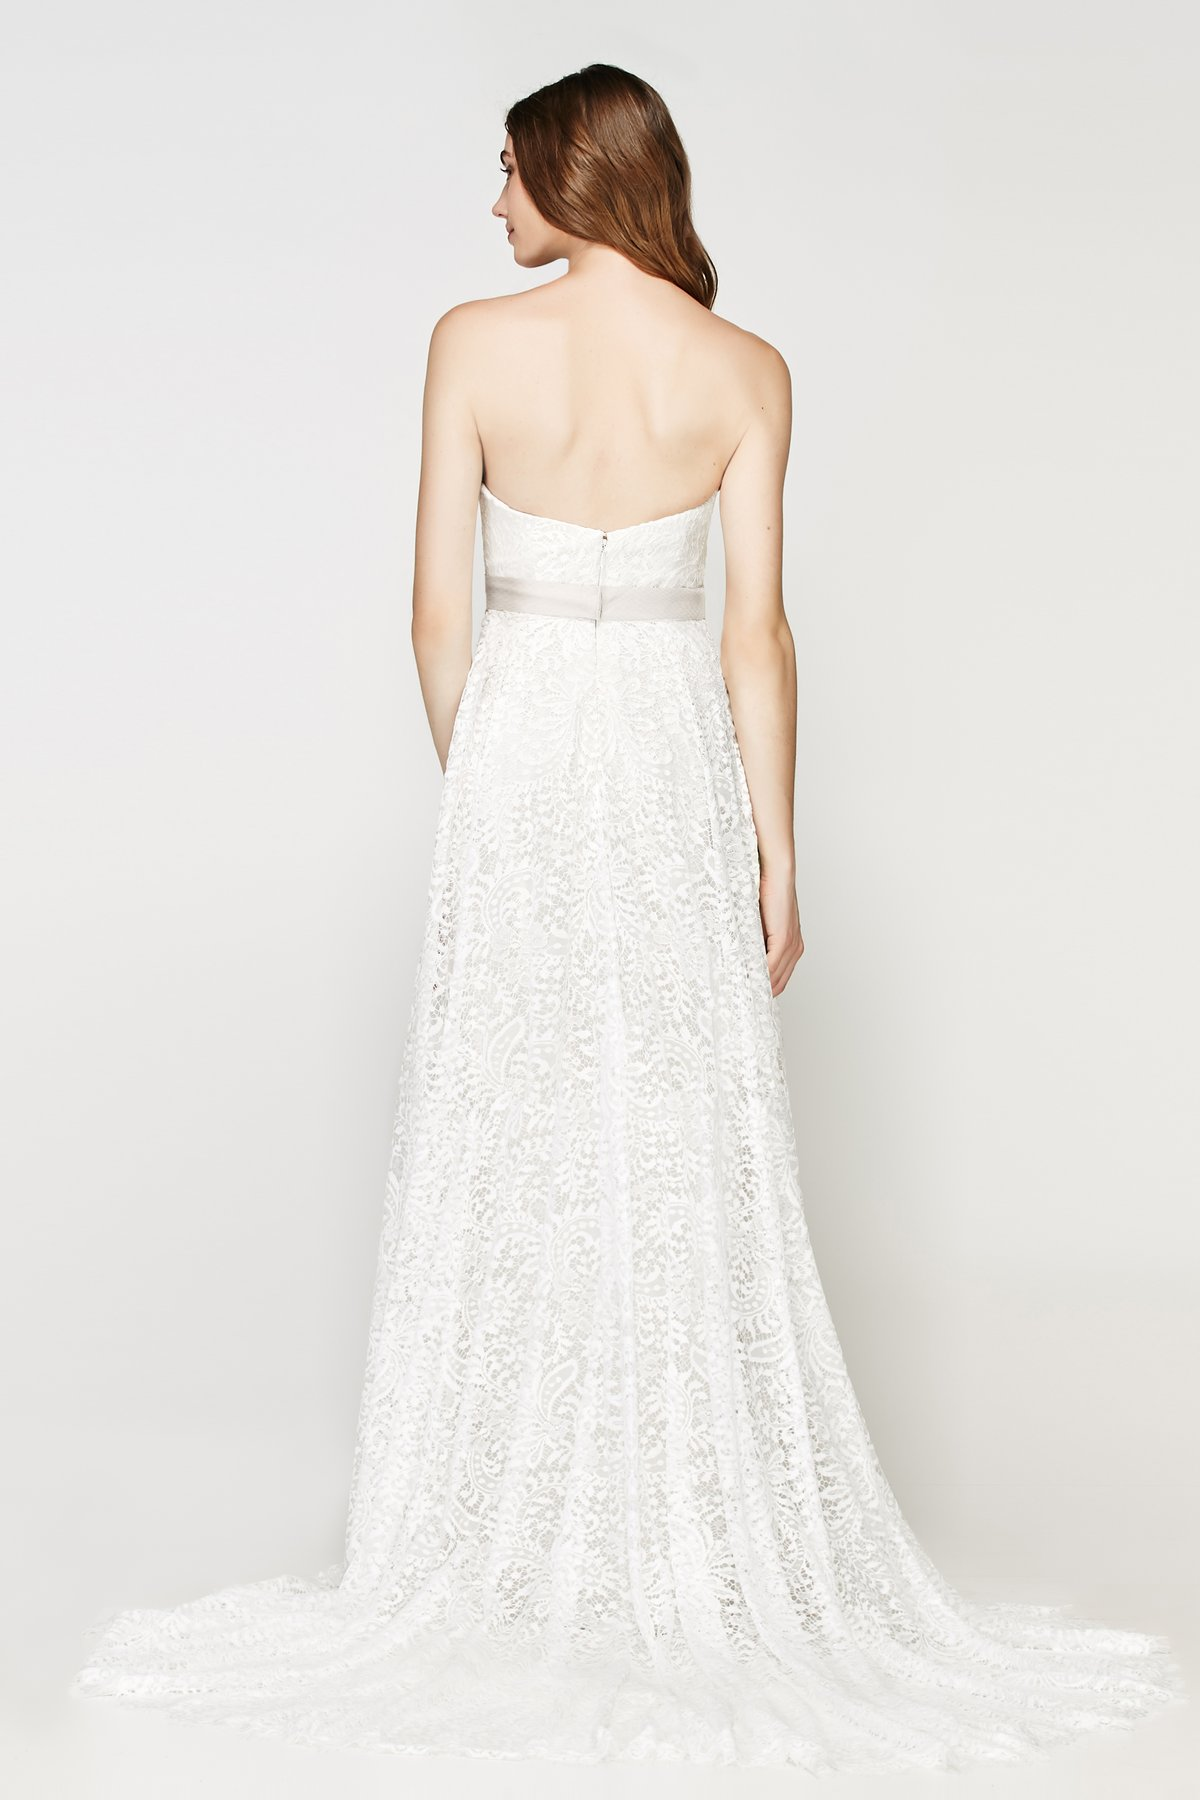 Willowby, Wedding Dress Designer, Willowby Collection | Archive Bridal